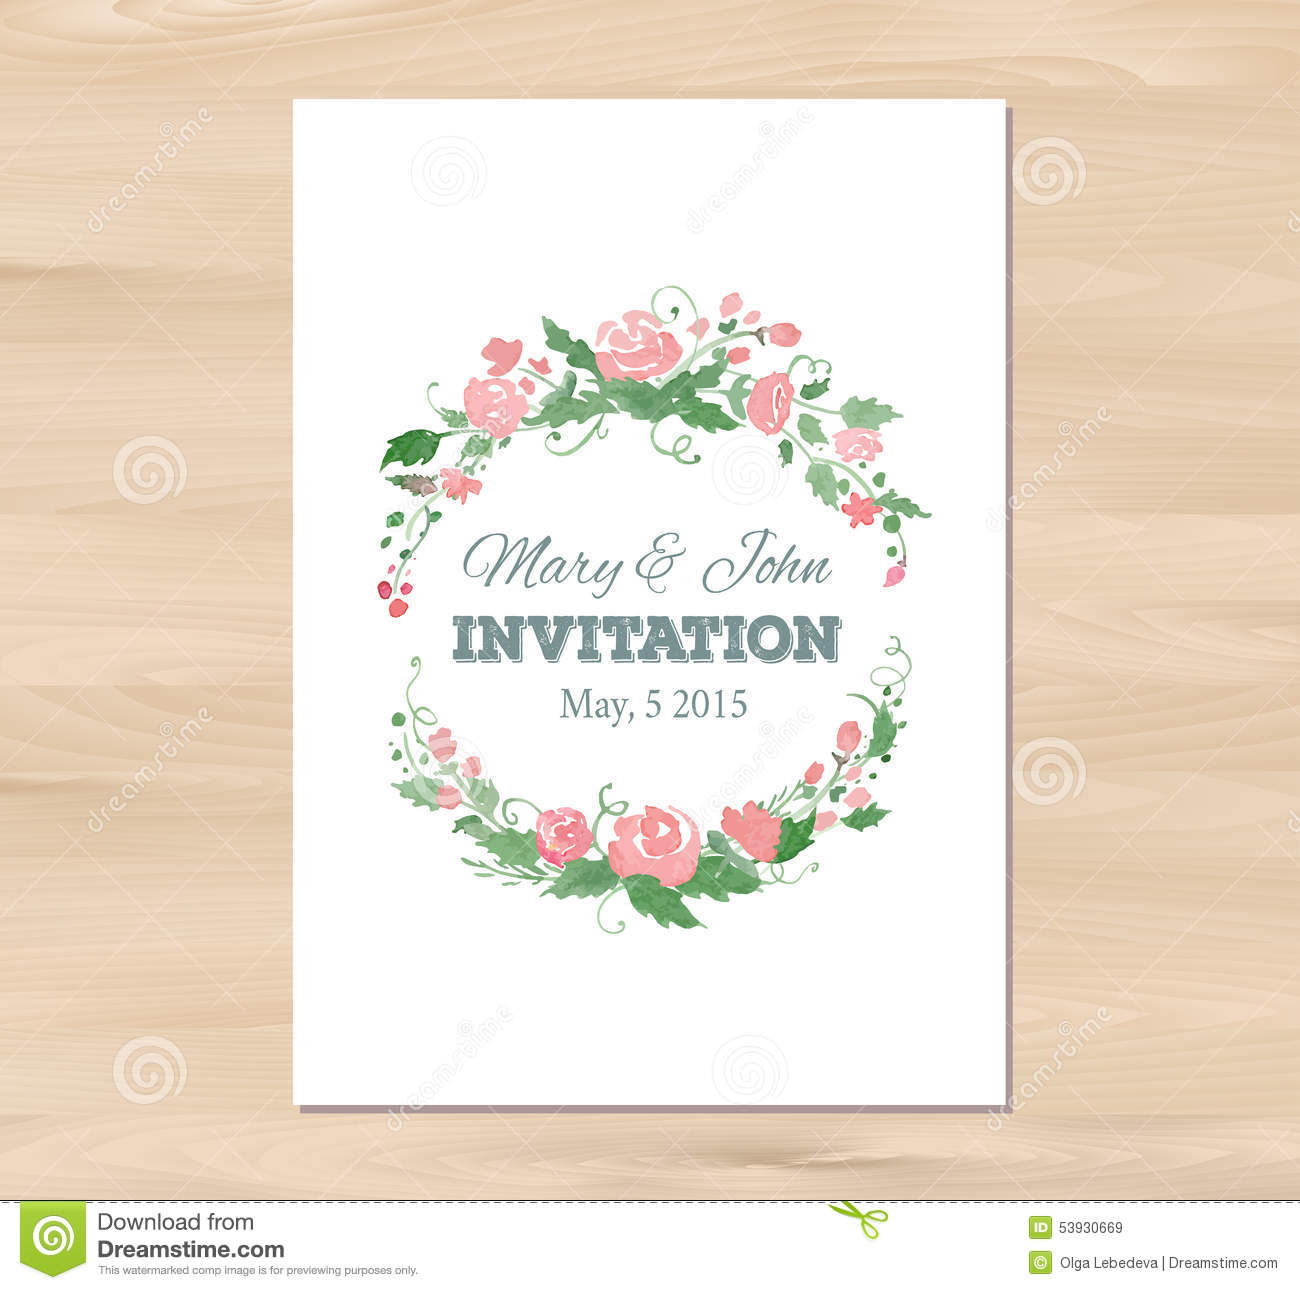 Aquarelle Invitations de mariage